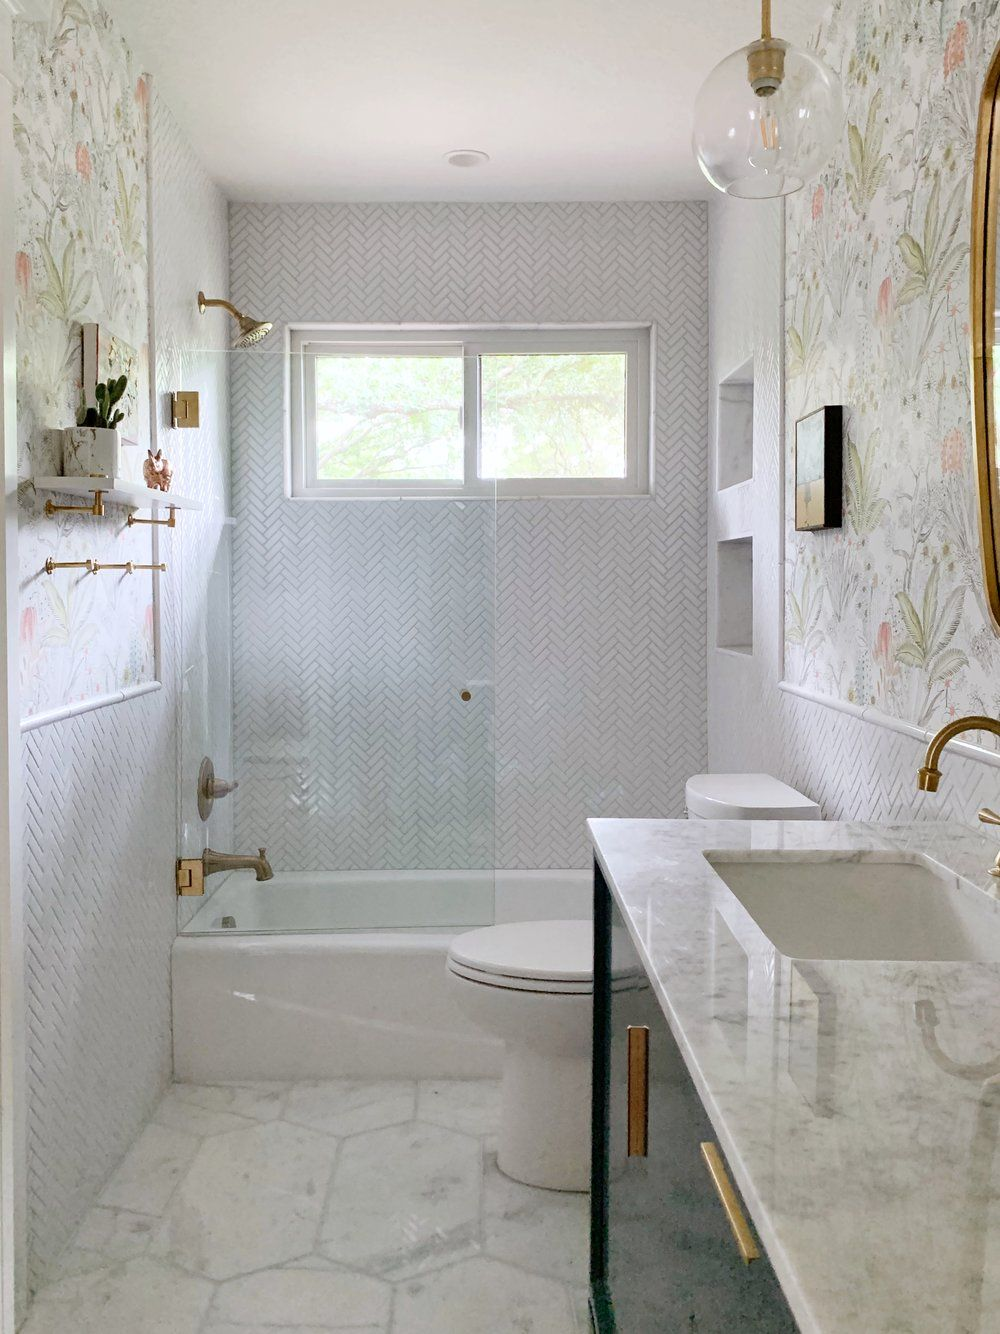 Girl S Bathroom Reveal One Room Challenge Spring 2019 Kristin Laing Design In 2020 Girls Bathroom Bathrooms Remodel Small Bathroom